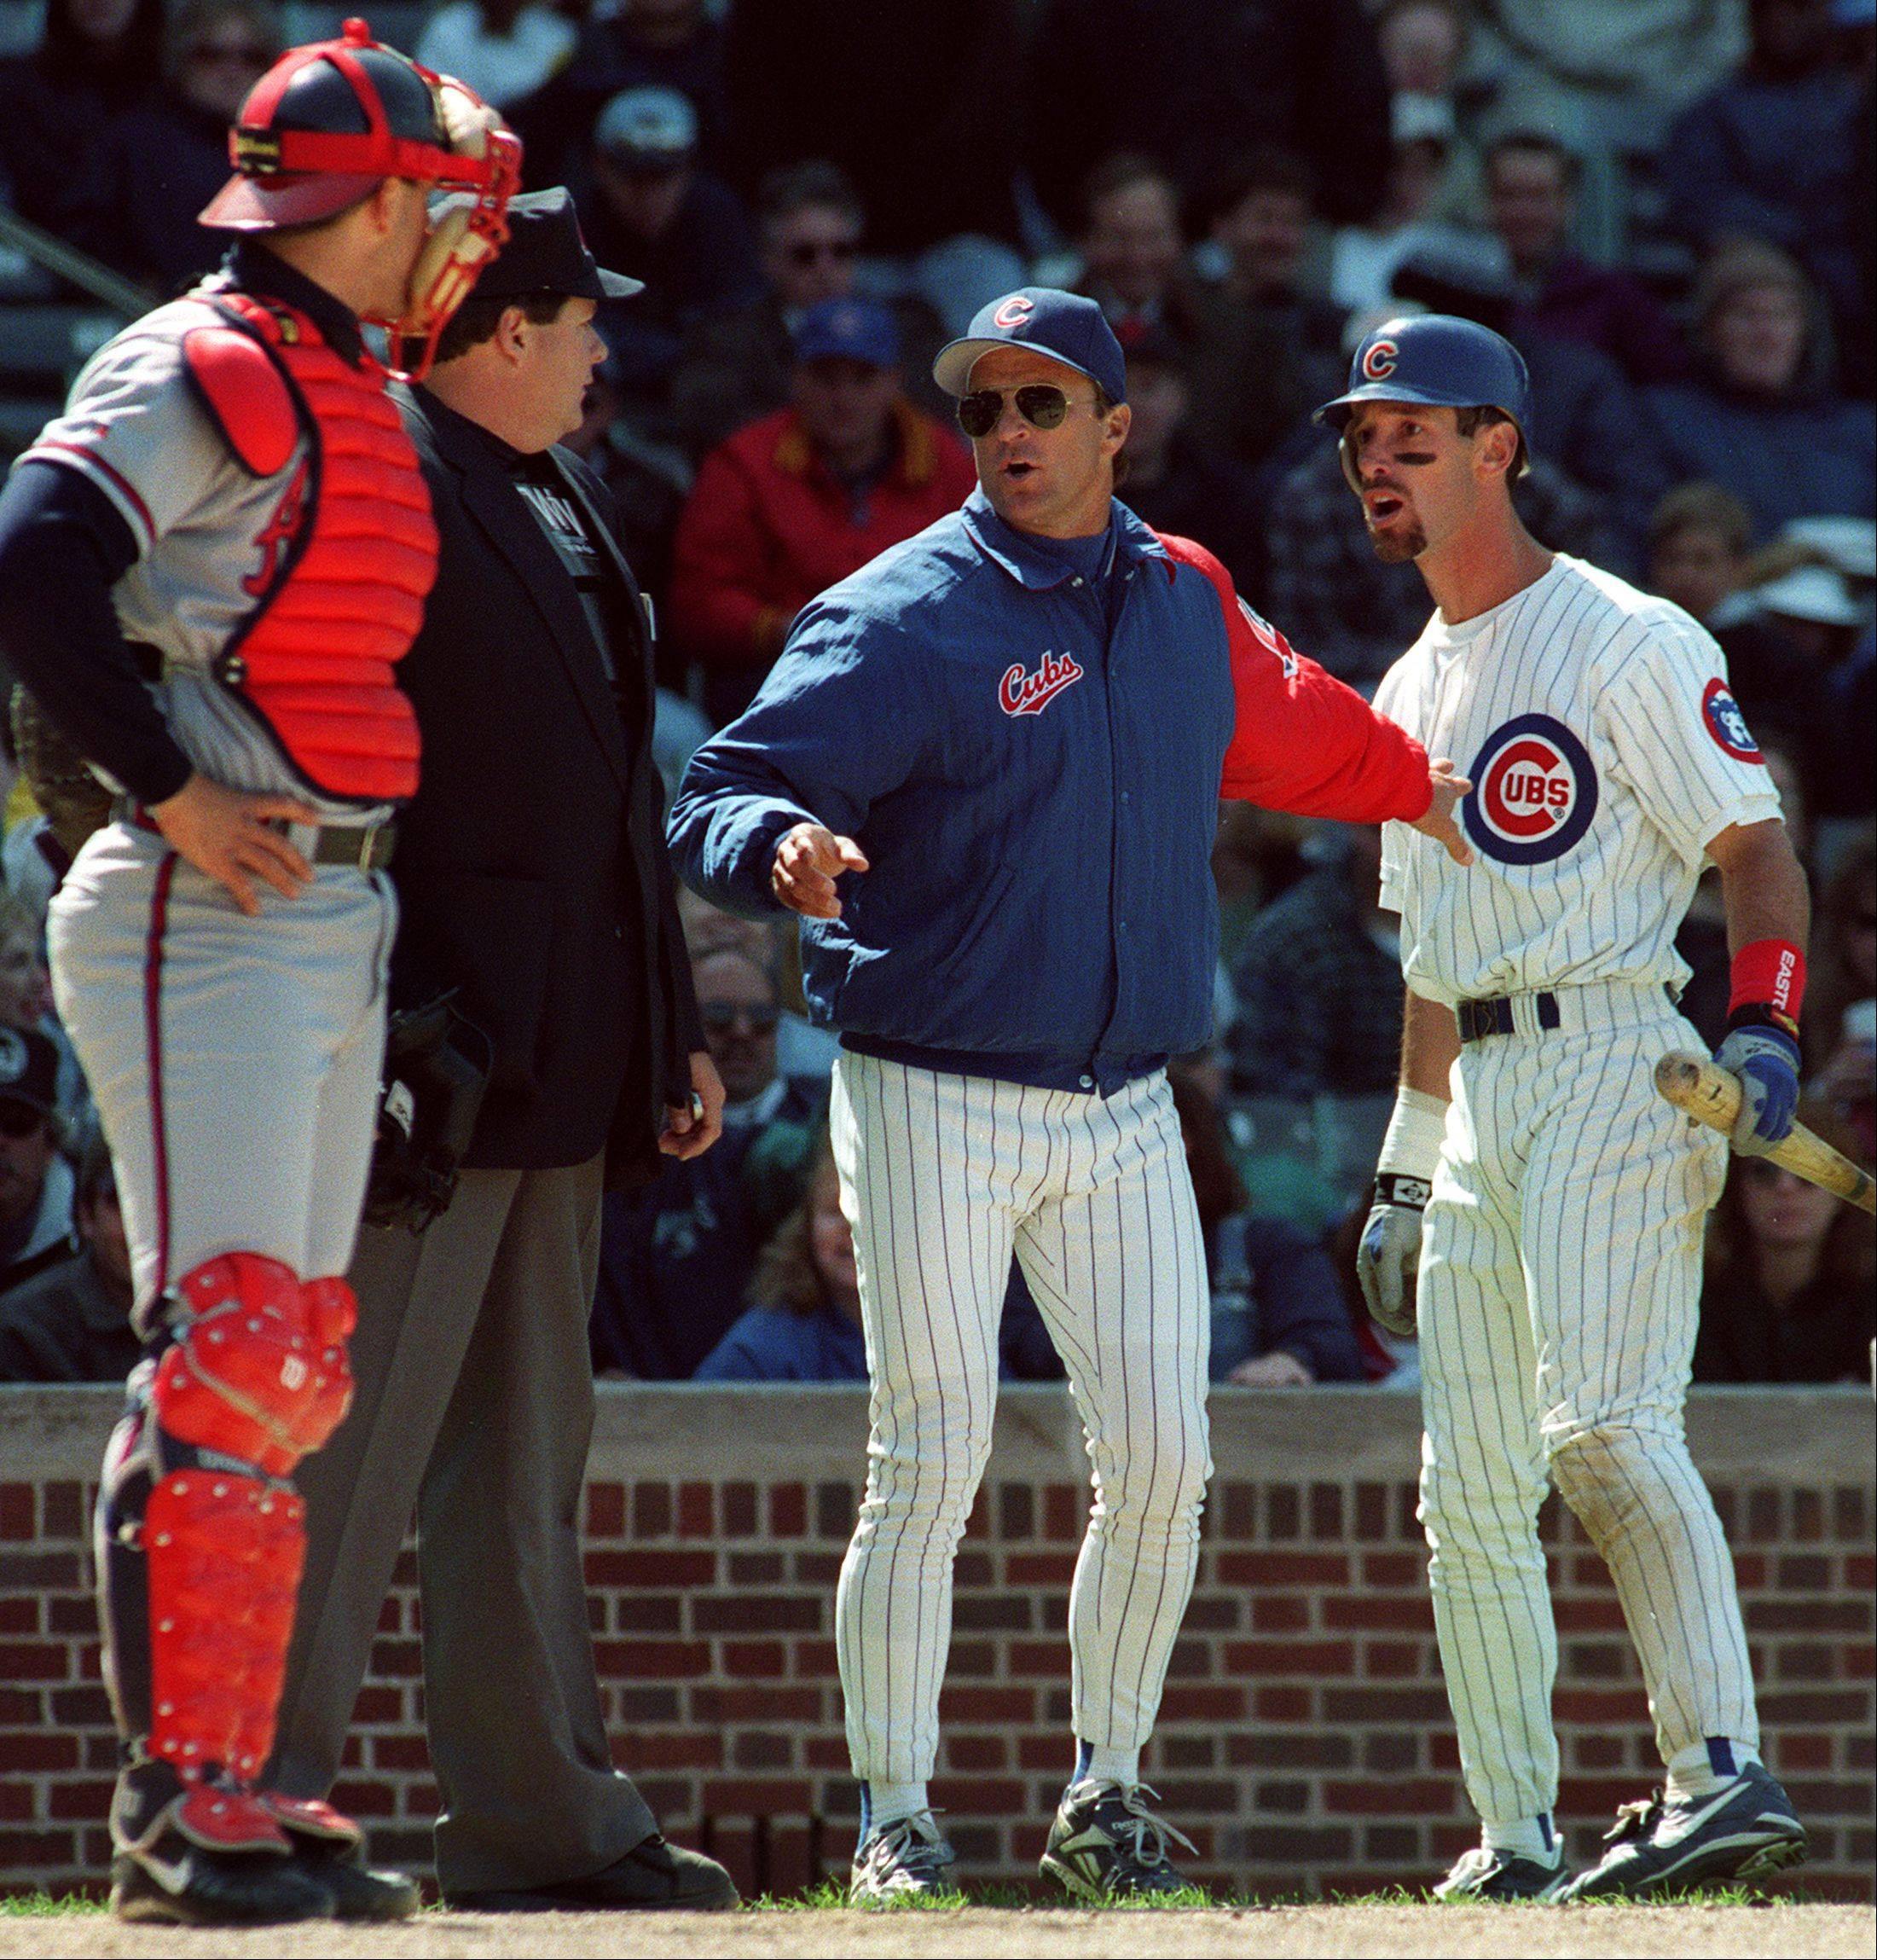 The Cubs started hot in 1999 but finished 67-95 and Jim Riggleman was fired the day after the season ended.